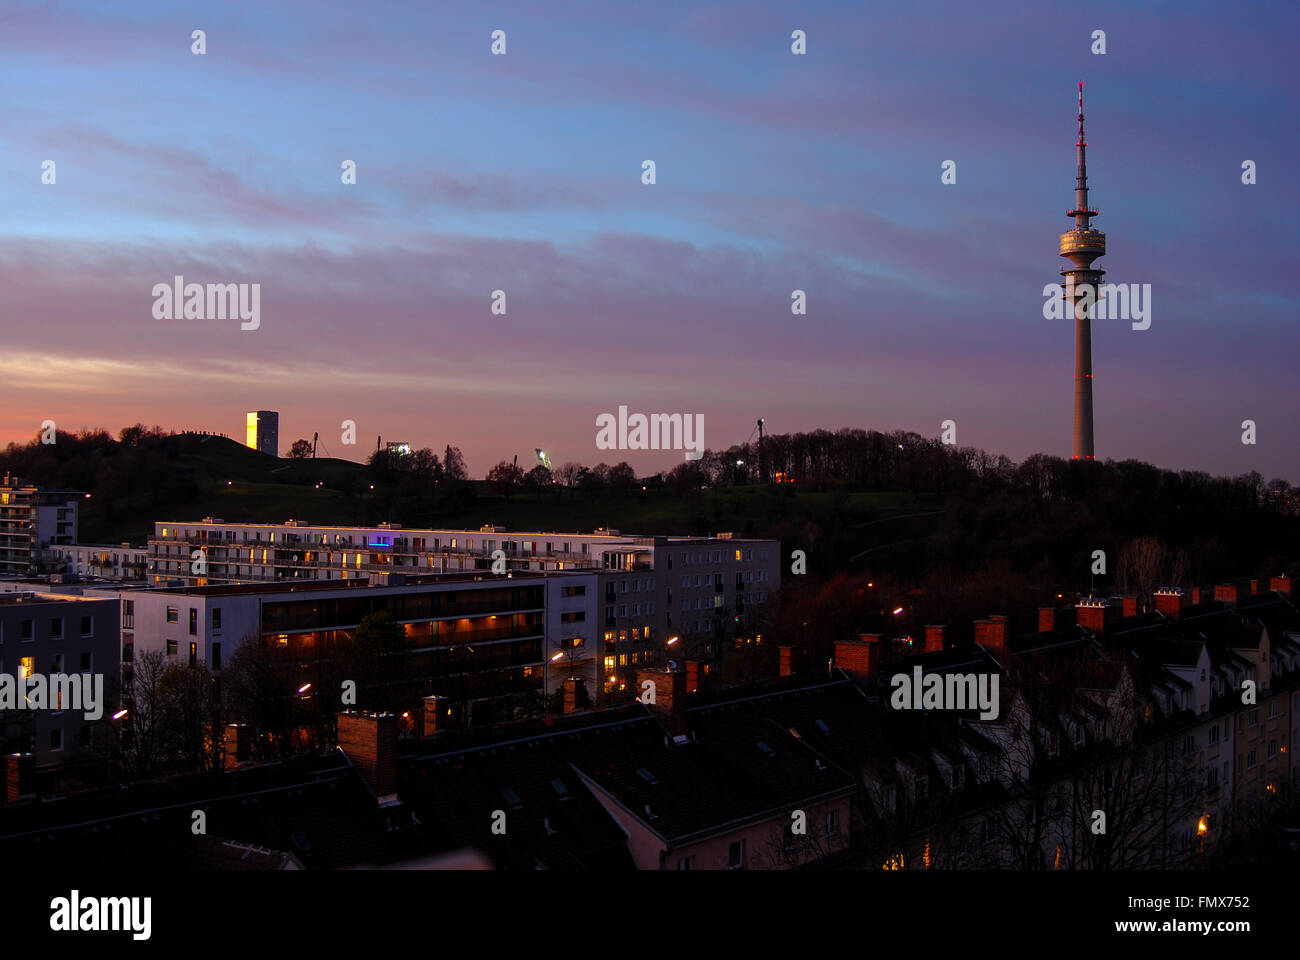 Olympic tower and appartment buildings in Munich seen at sunset - Stock Image